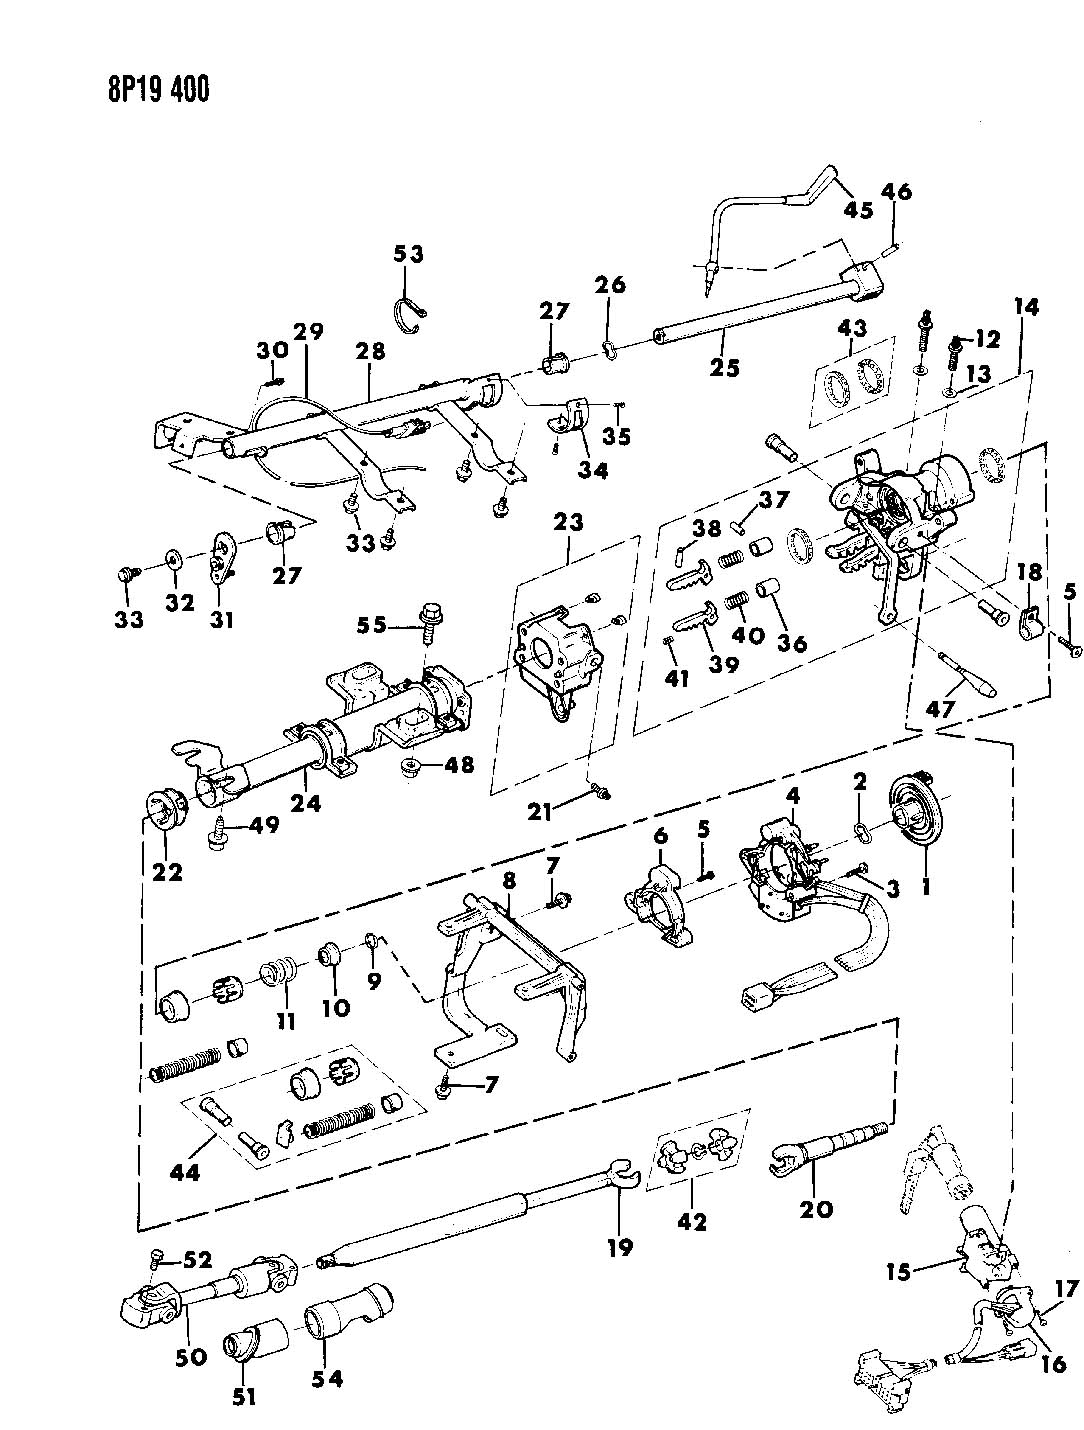 Service manual [1990 Eagle Talon Tilt Steering Column